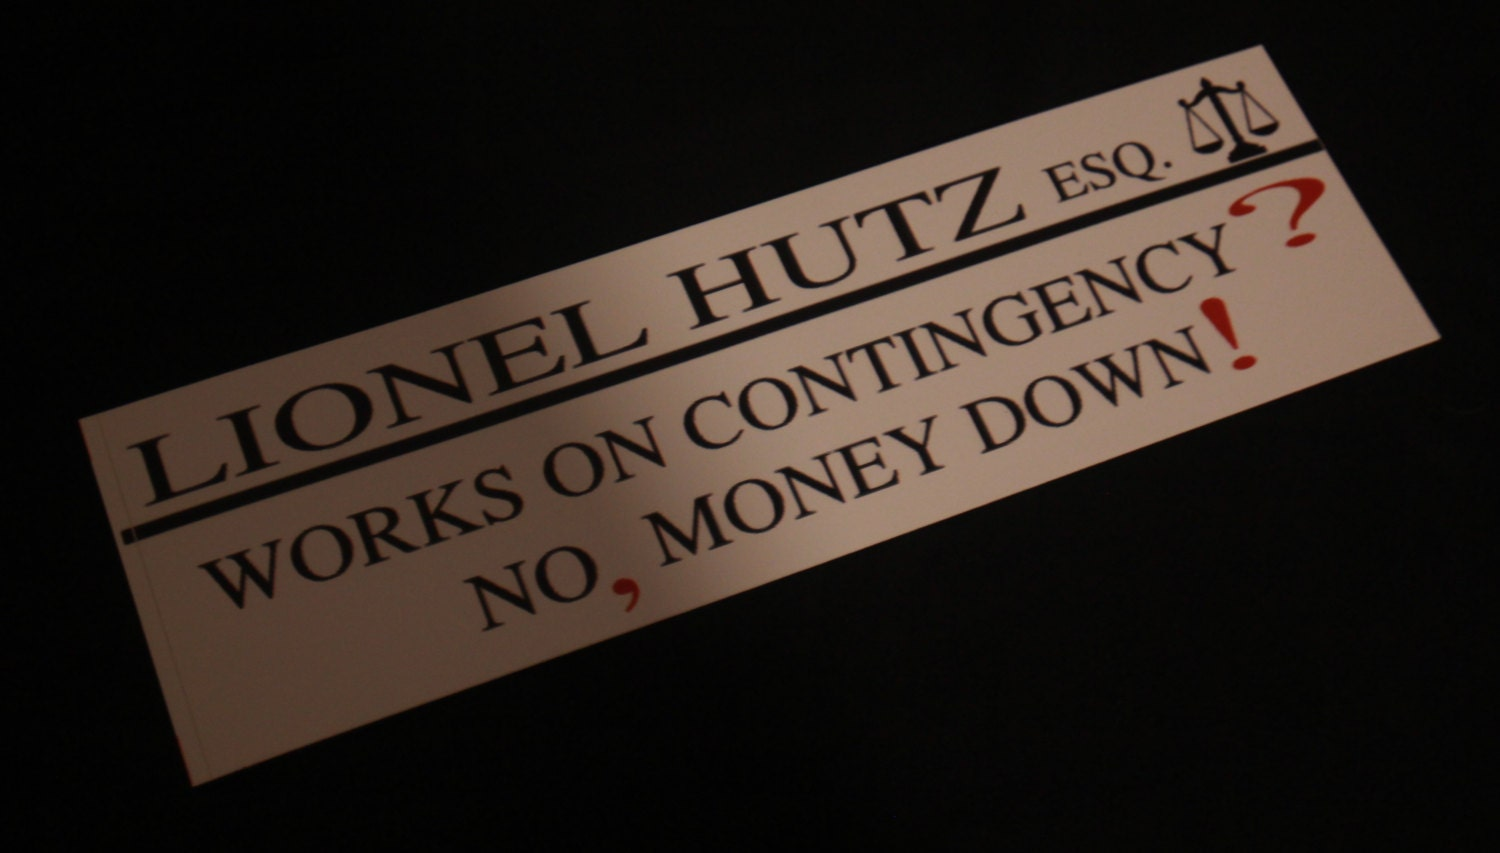 Lionel hutz bumper sticker 3 x 10 by thejhole on etsy for Lionel hutz business card